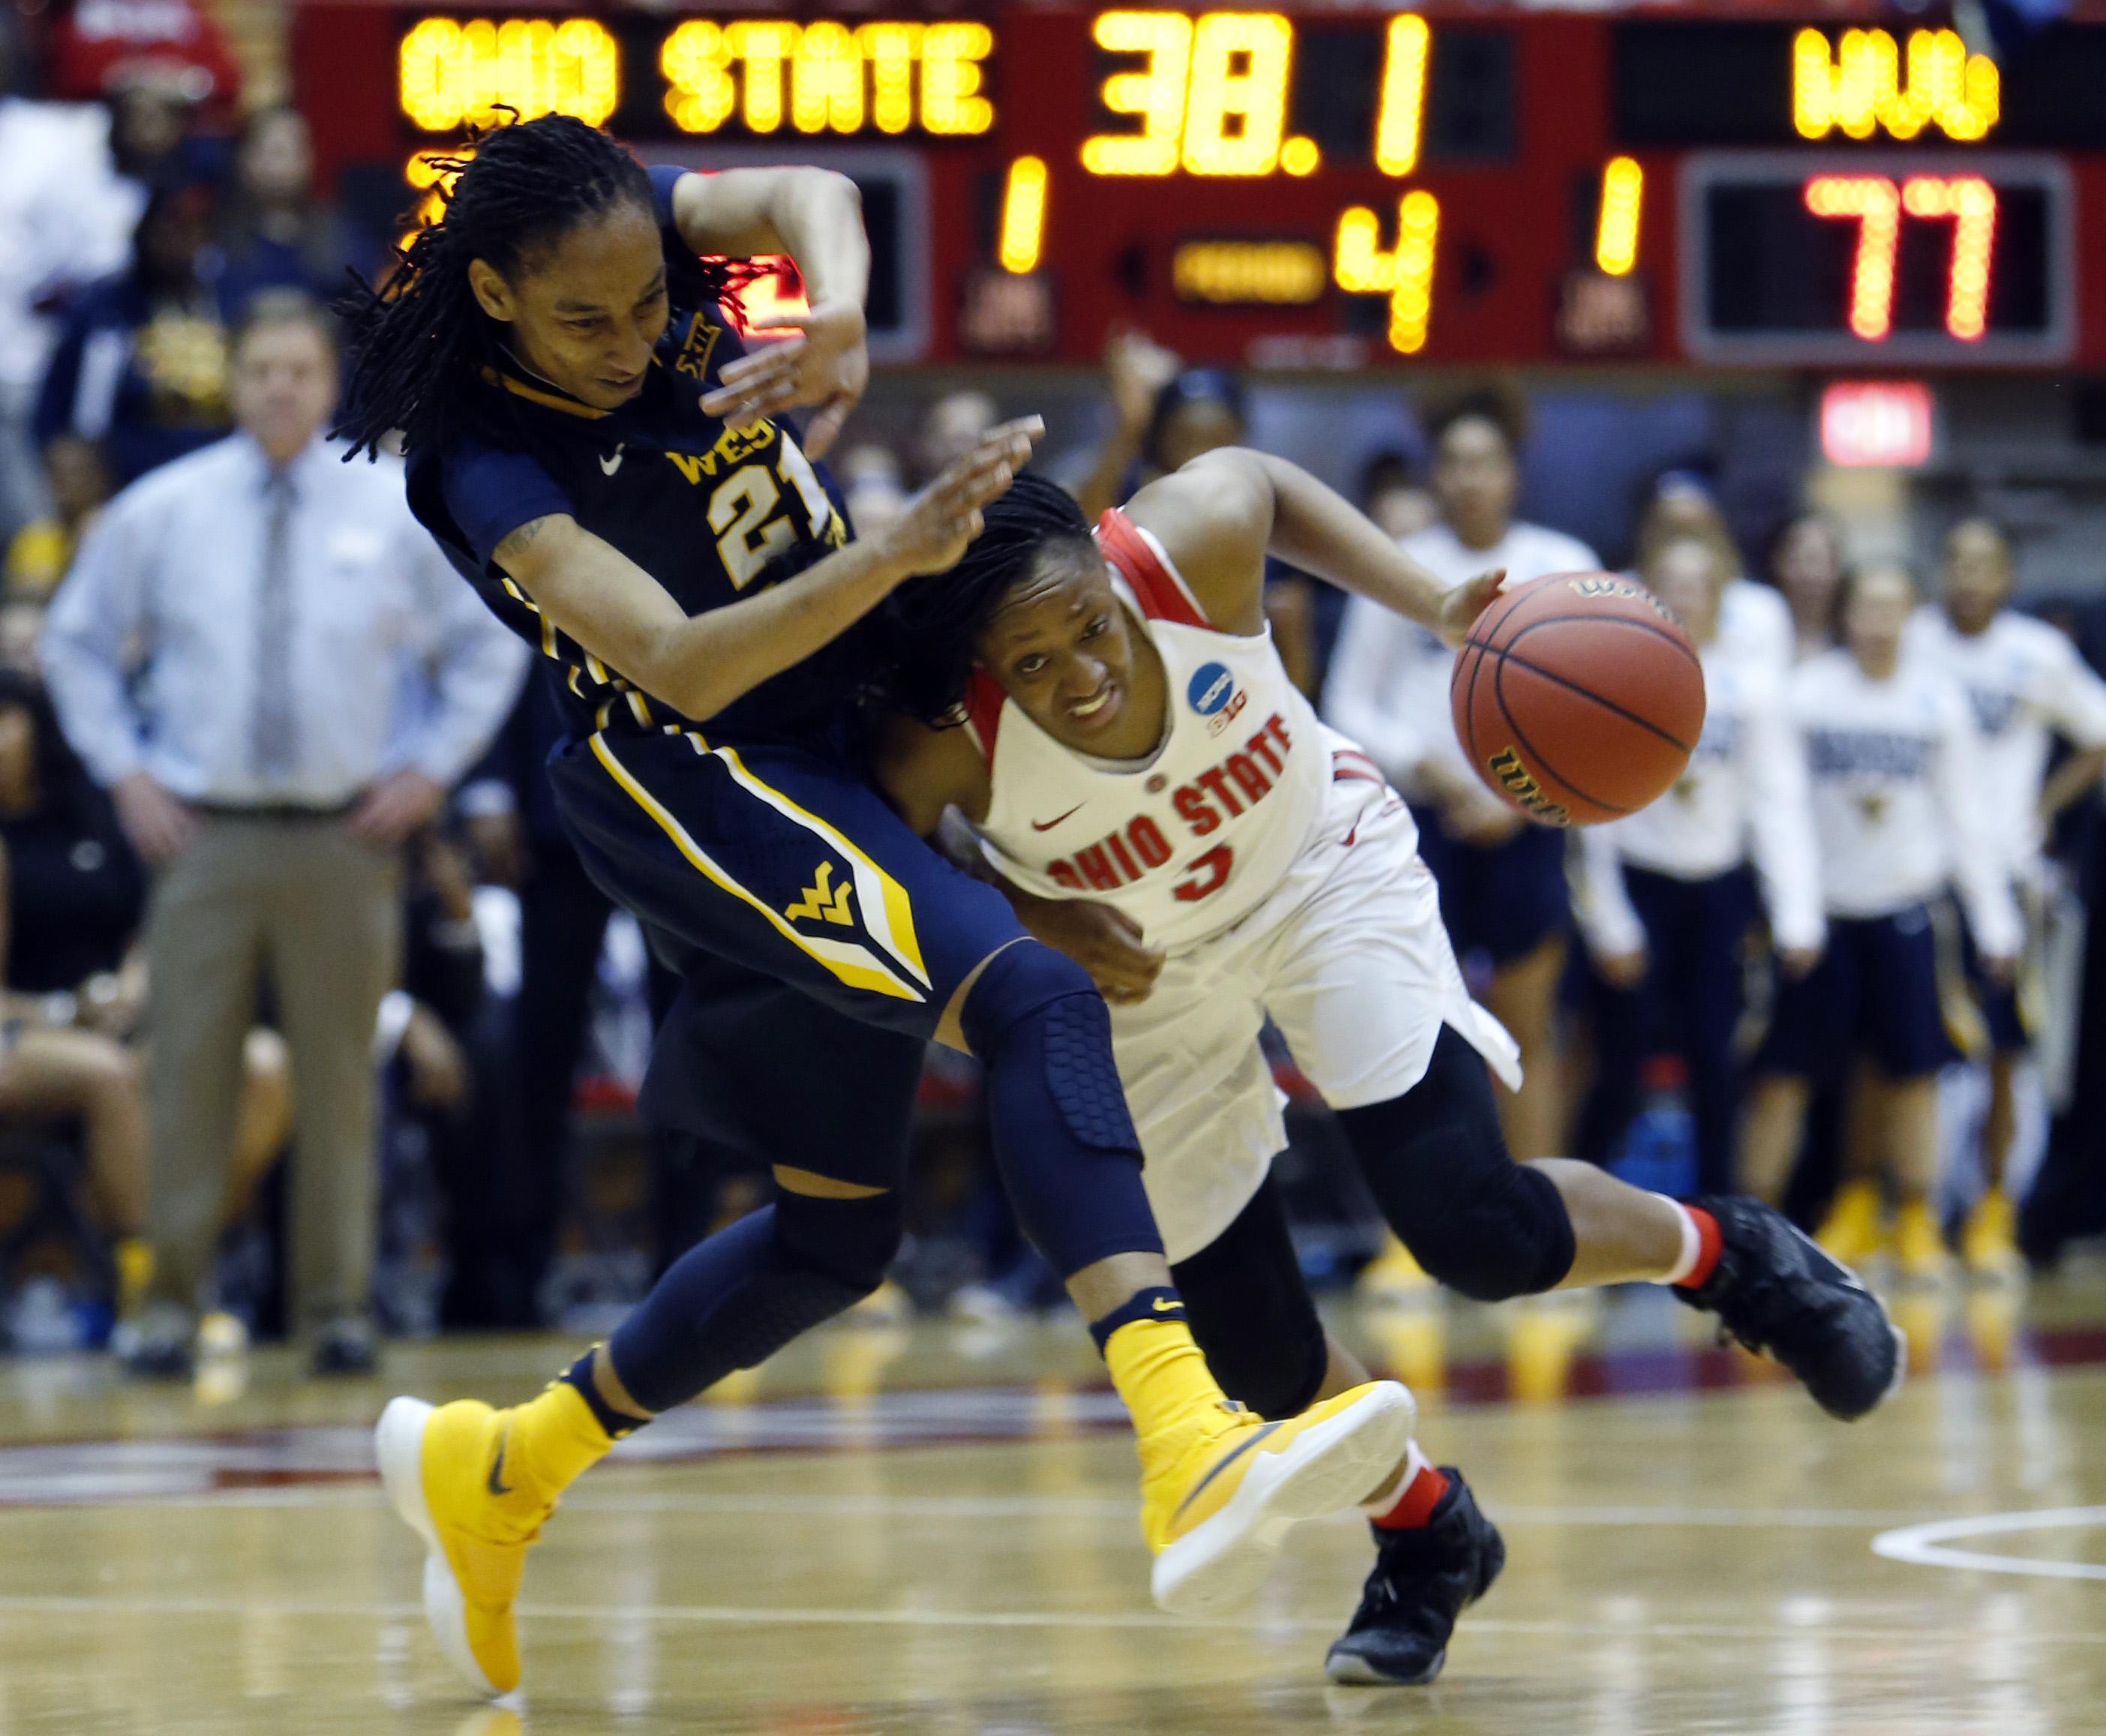 Ohio State's Kelsey Mitchell, right, drives to the basket against West Virginia's Jessica Morton during a second-round women's college basketball game in the NCAA Tournament Sunday, March 20, 2016, in Columbus, Ohio. (AP Photo/Jay LaPrete)